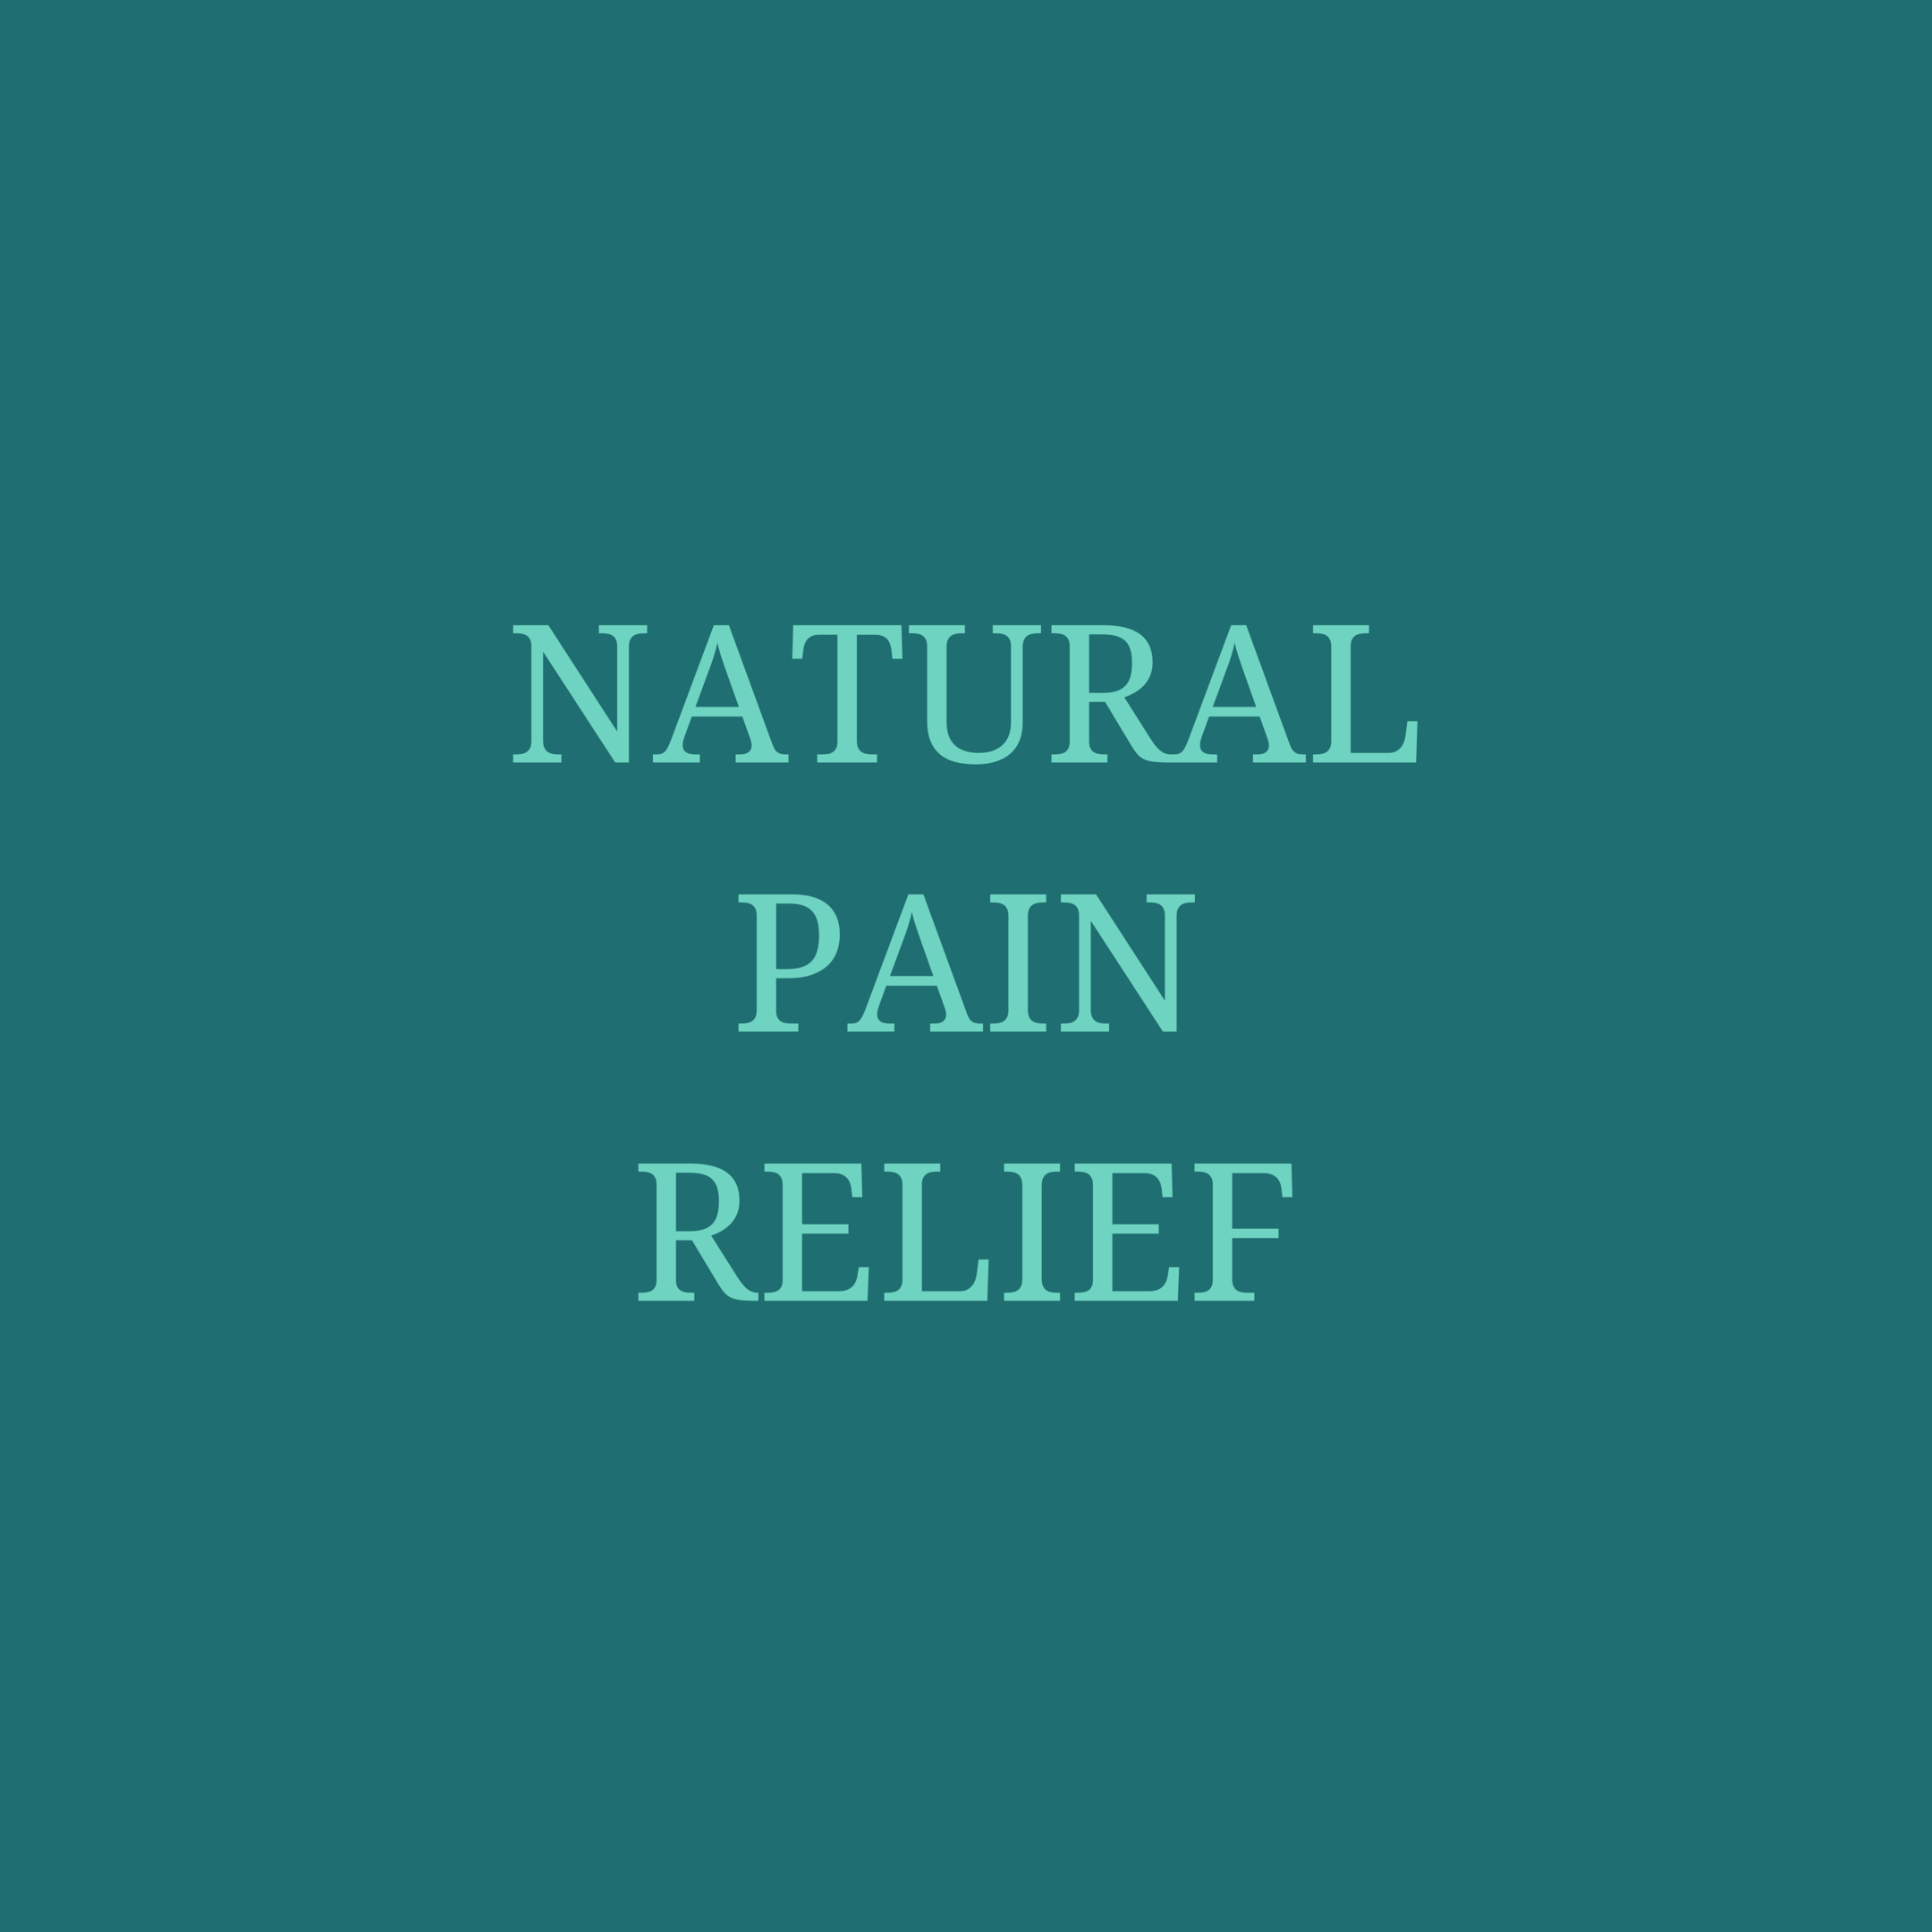 naturalpainrelief1.png